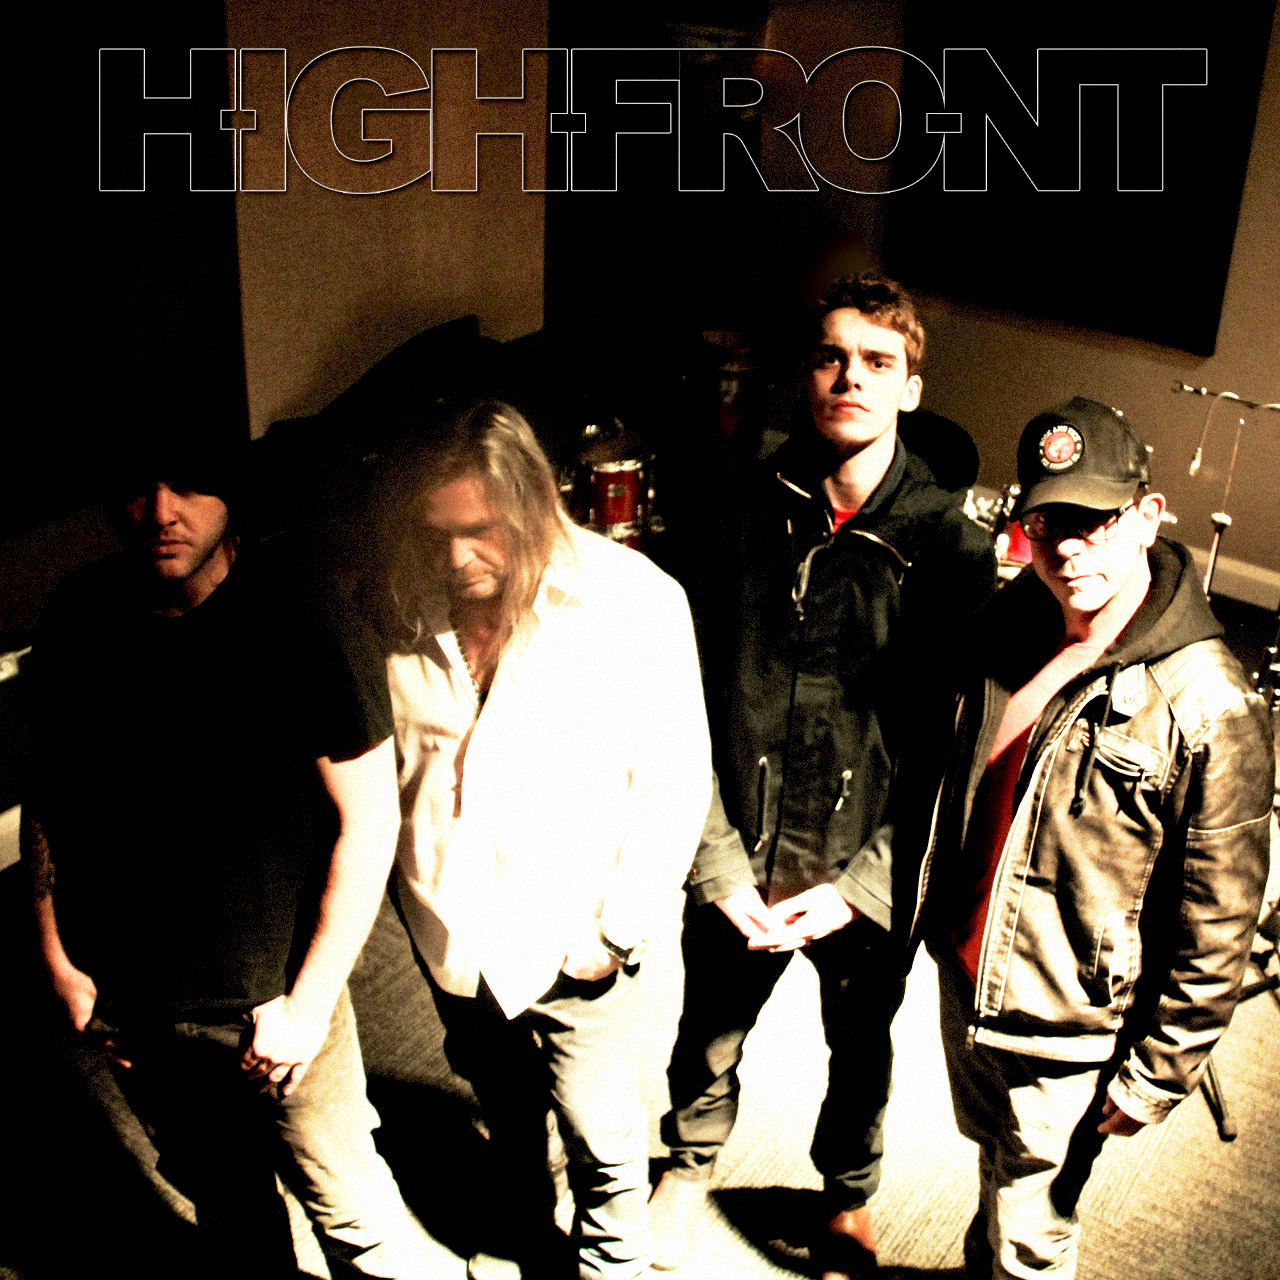 highfront2020band3.jpg